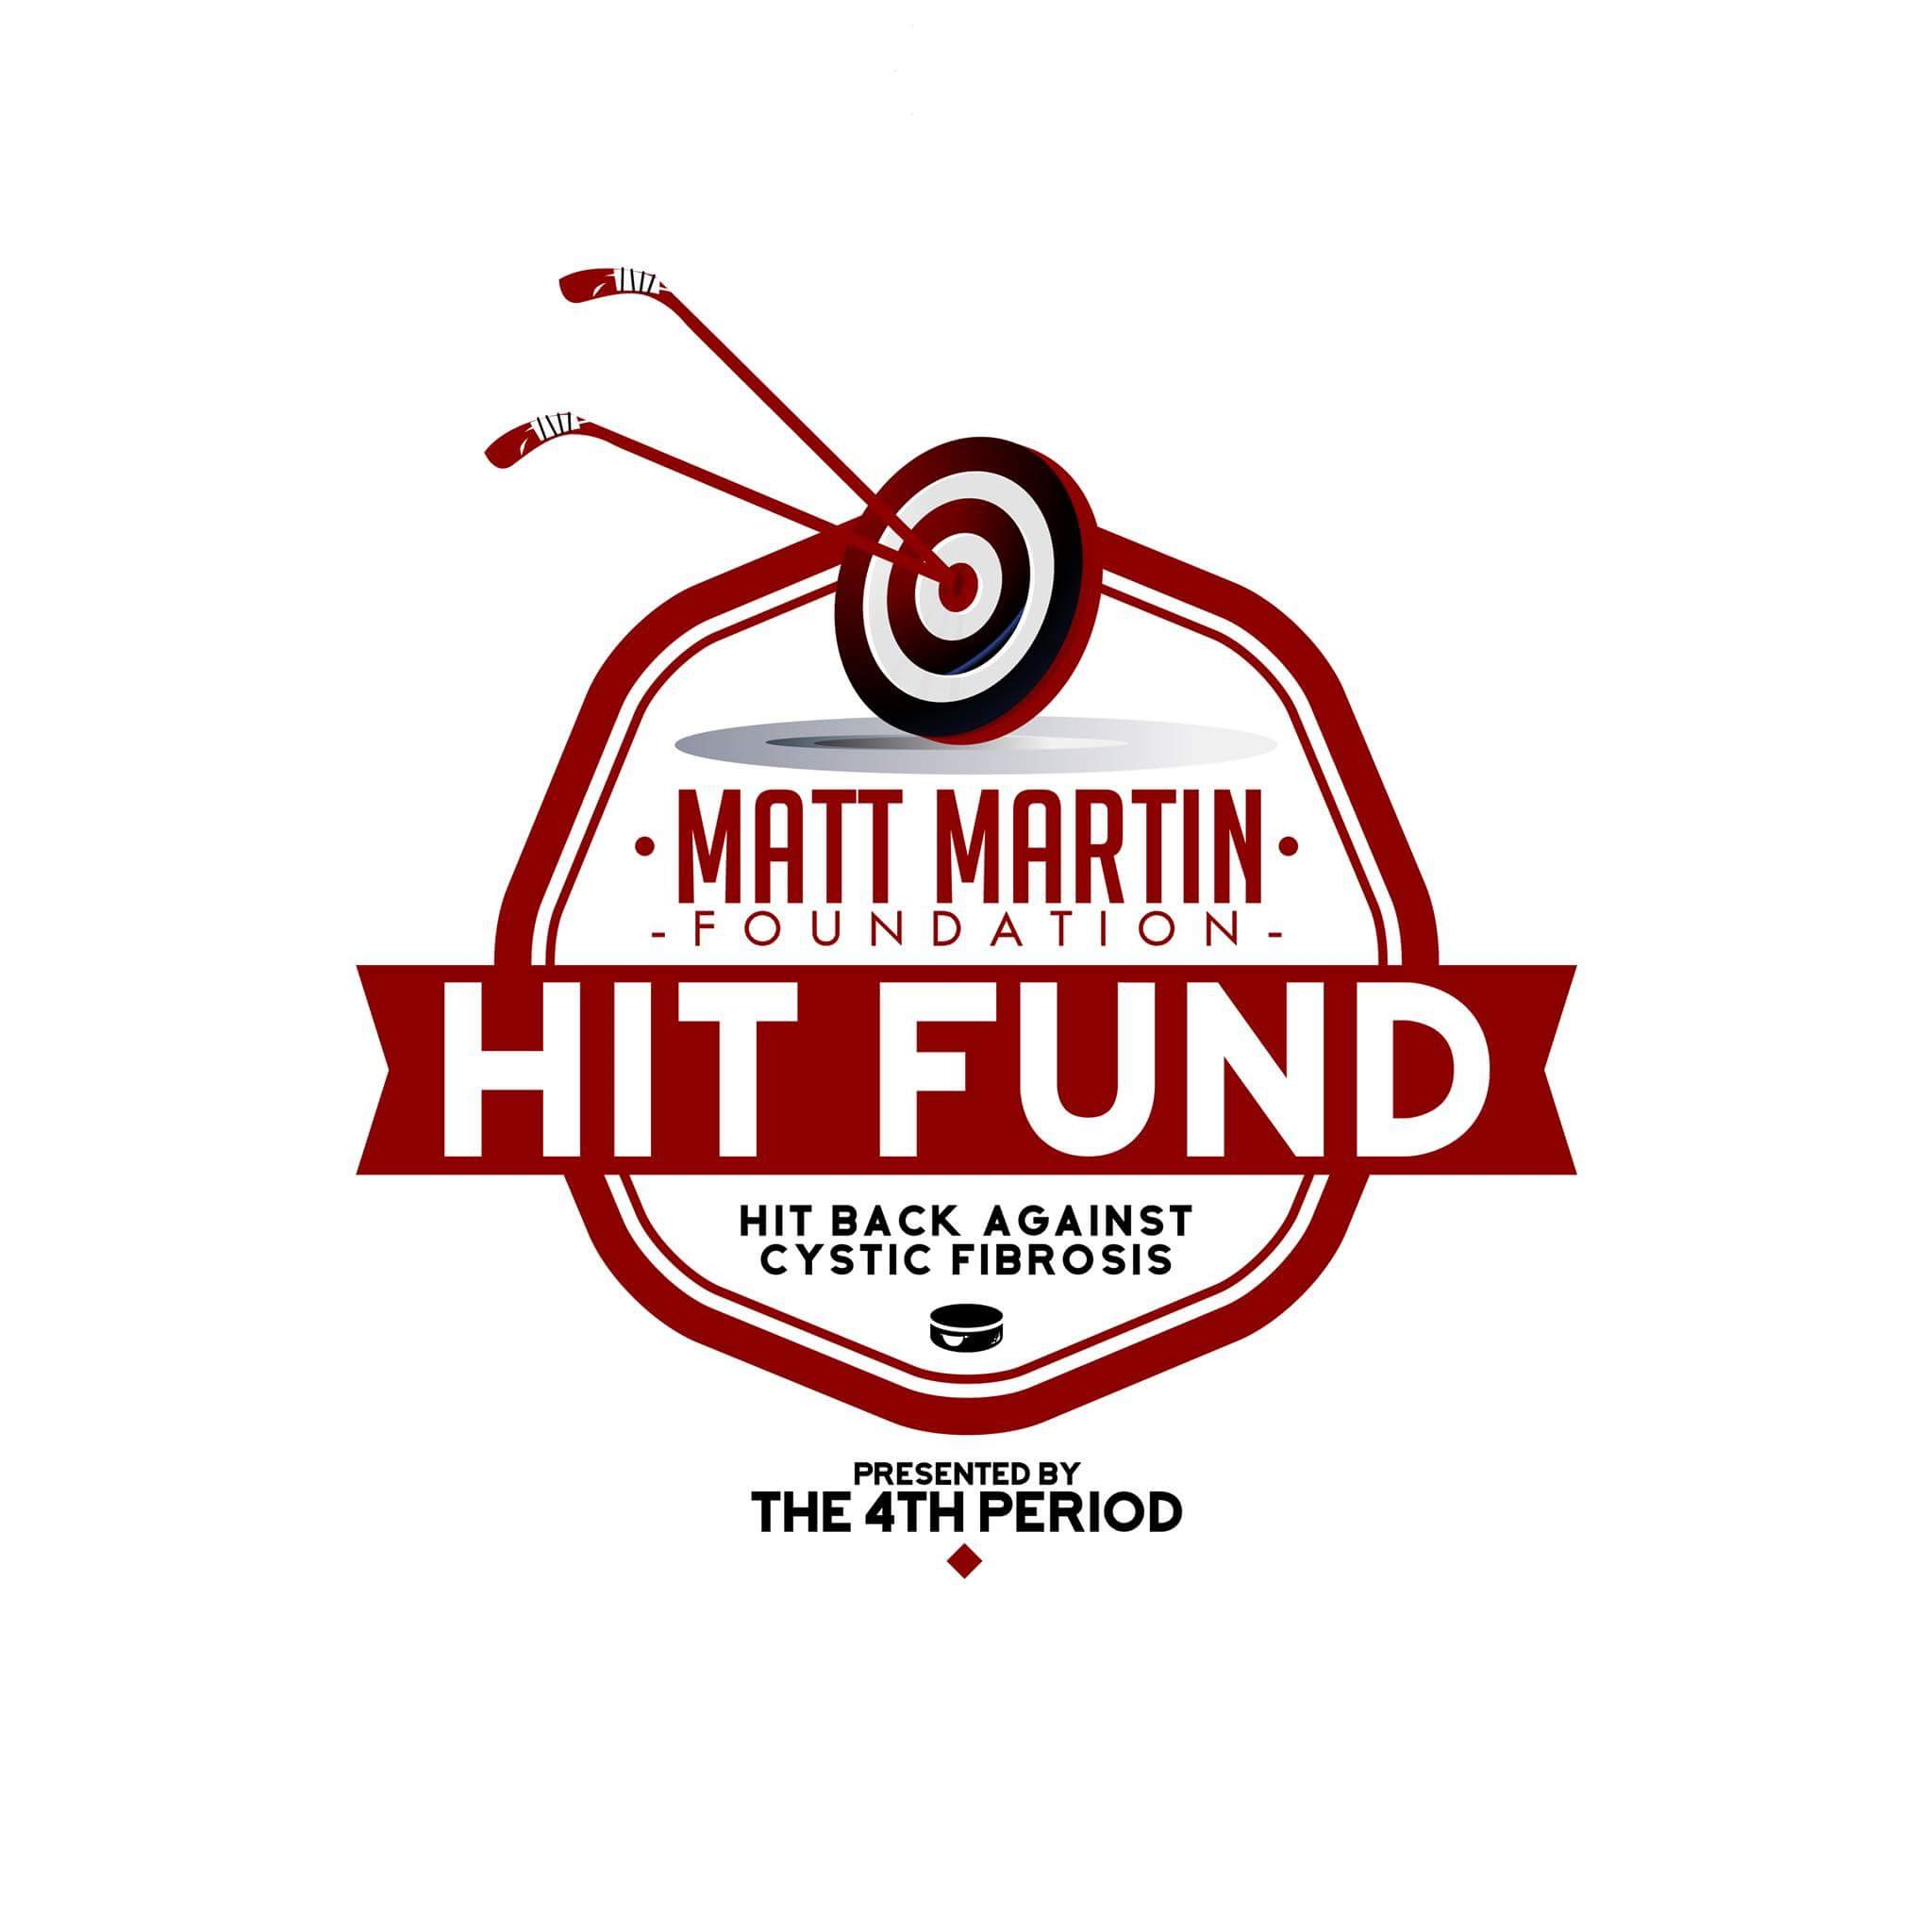 Matt Martin Foundation Hit Fund Logo